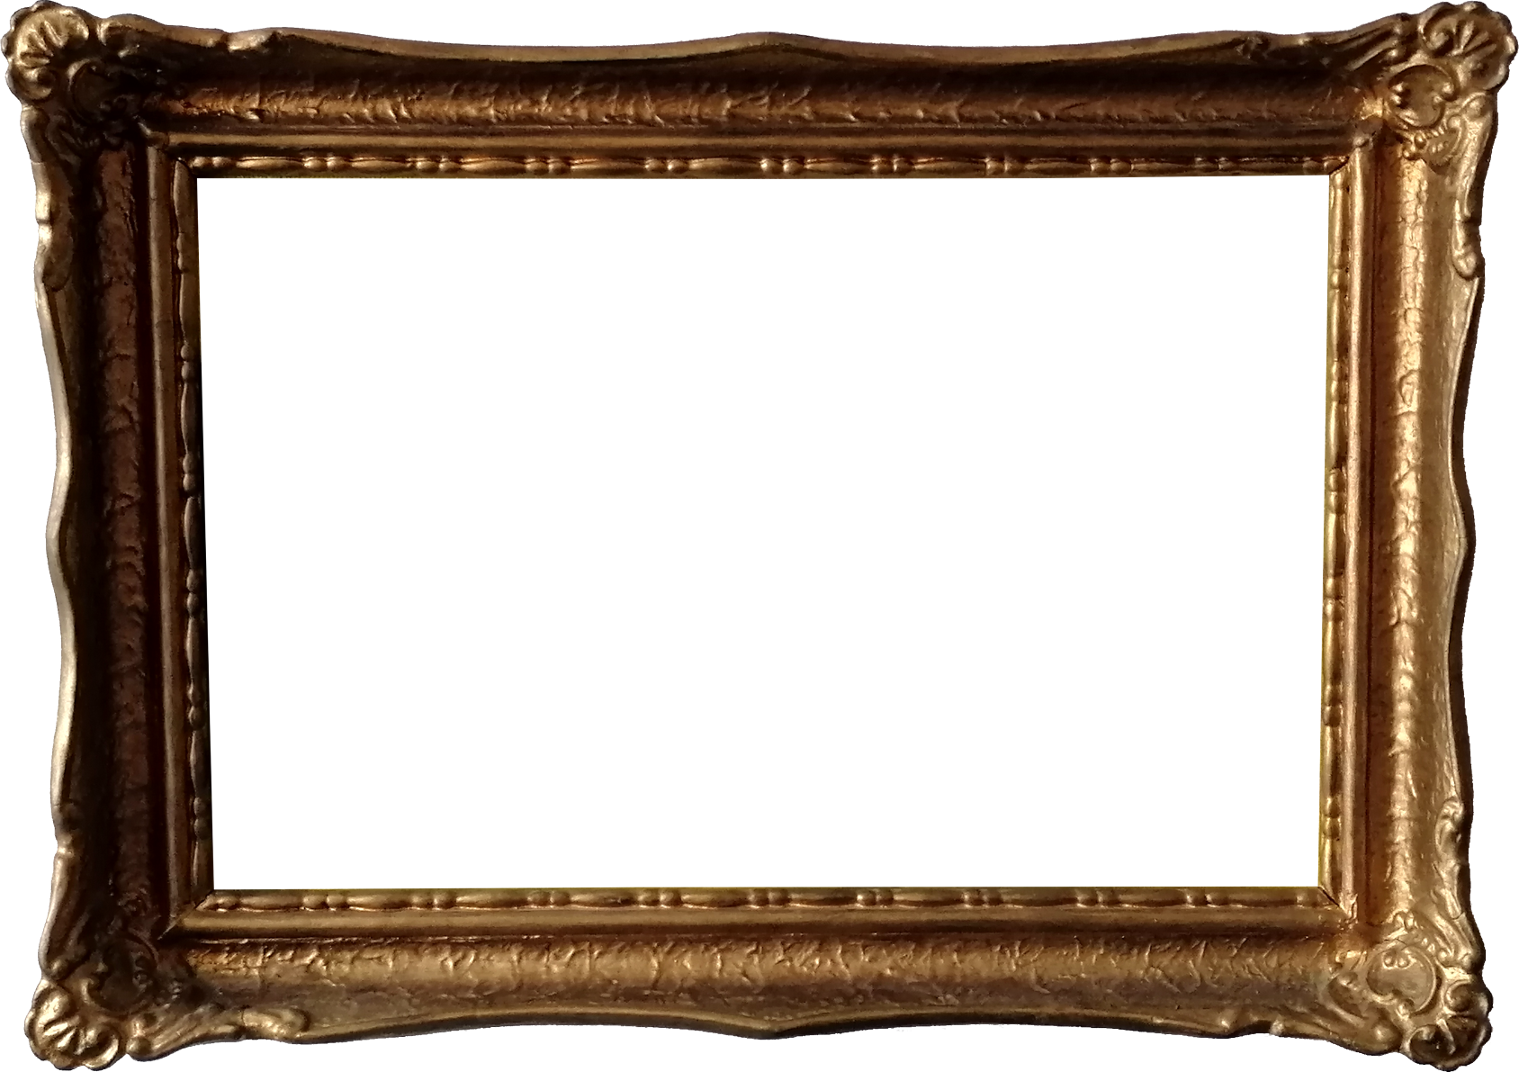 Gold Picture Frame Png Transparent Onlygfx Com A picture frame is a simultaneously protective and decorative edging for a picture, such as a painting or photograph. gold picture frame png transparent